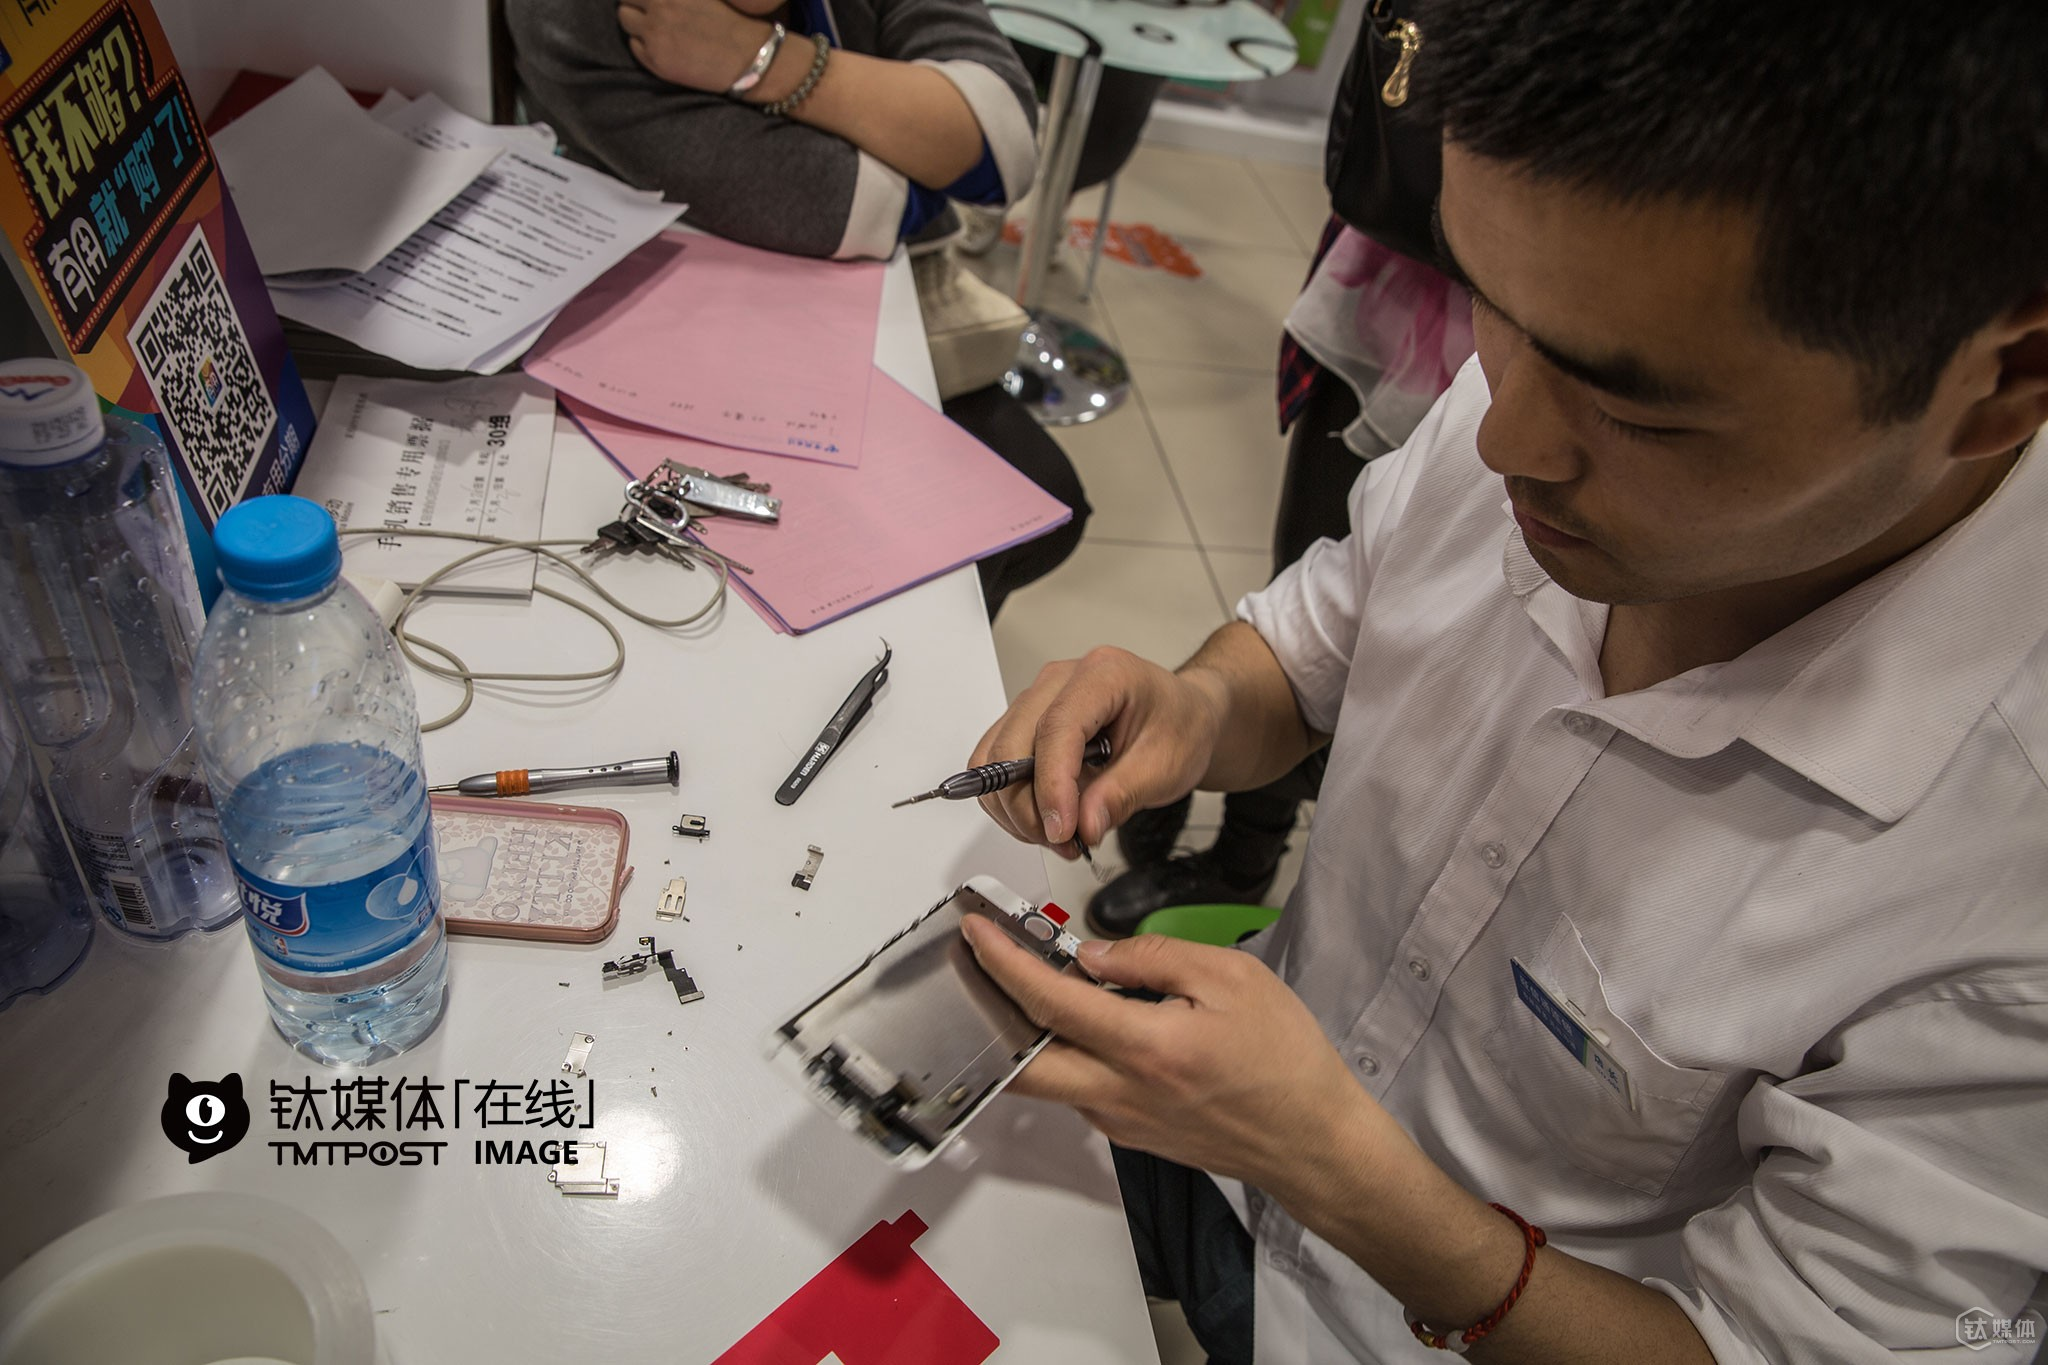 It was 7:40 PM. Ynag Wei, sales manager of the store, was changing the iPhone screen for a customer. He changed screens for two iPhones today.